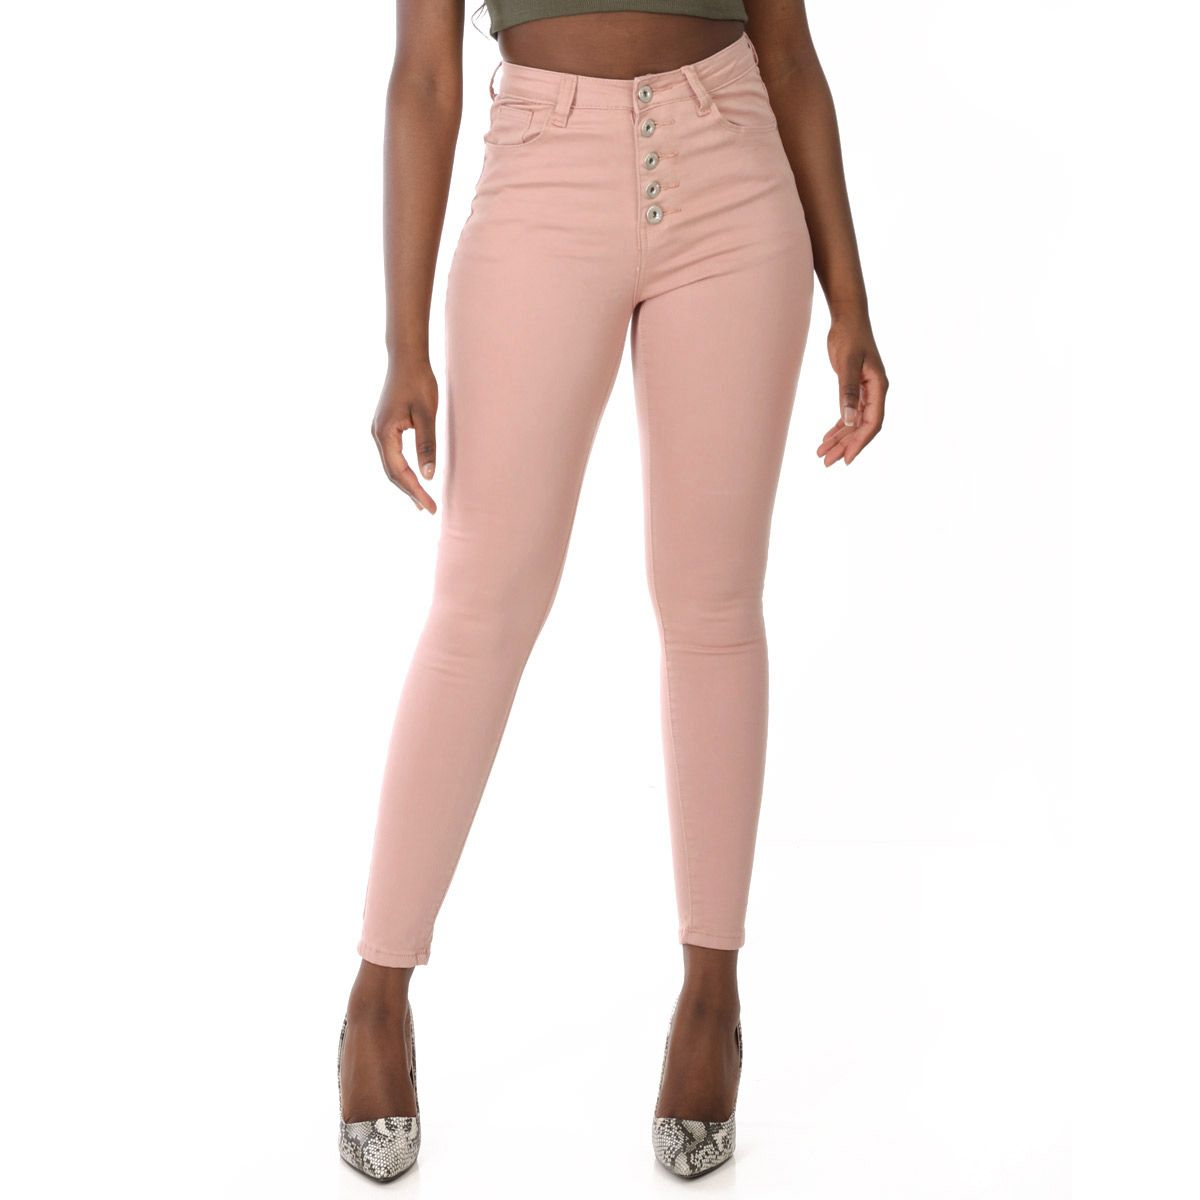 Jeans skinny rose taille haute